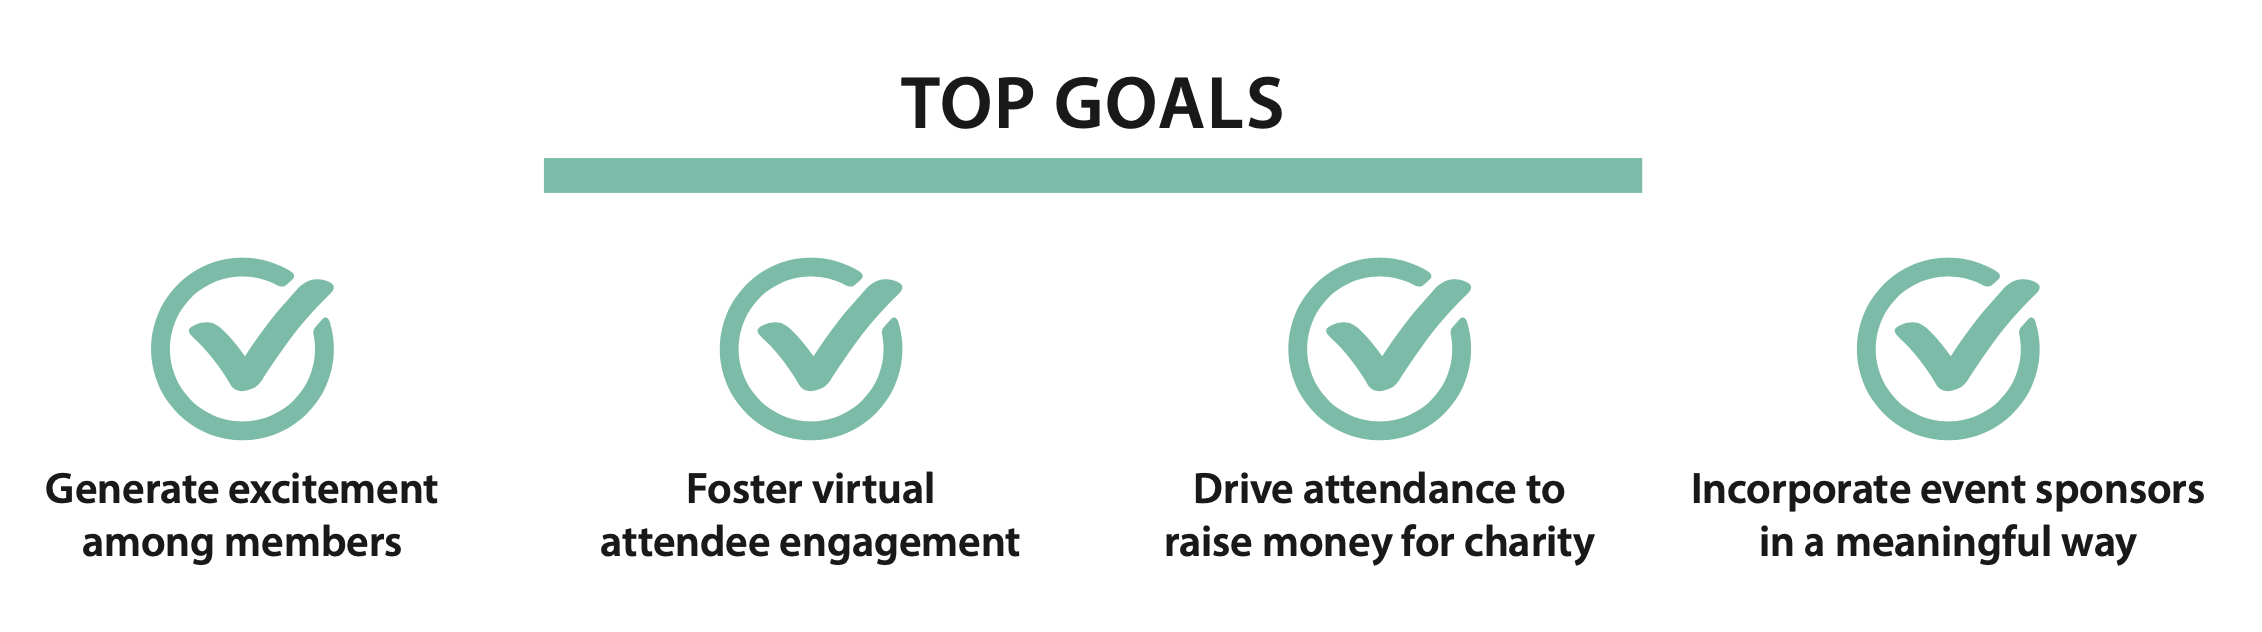 Top Goals: generate excitement among members, foster virtual attendee engagement, drive attendance to raise money for charity, incorporate sponsors in a meaningful way